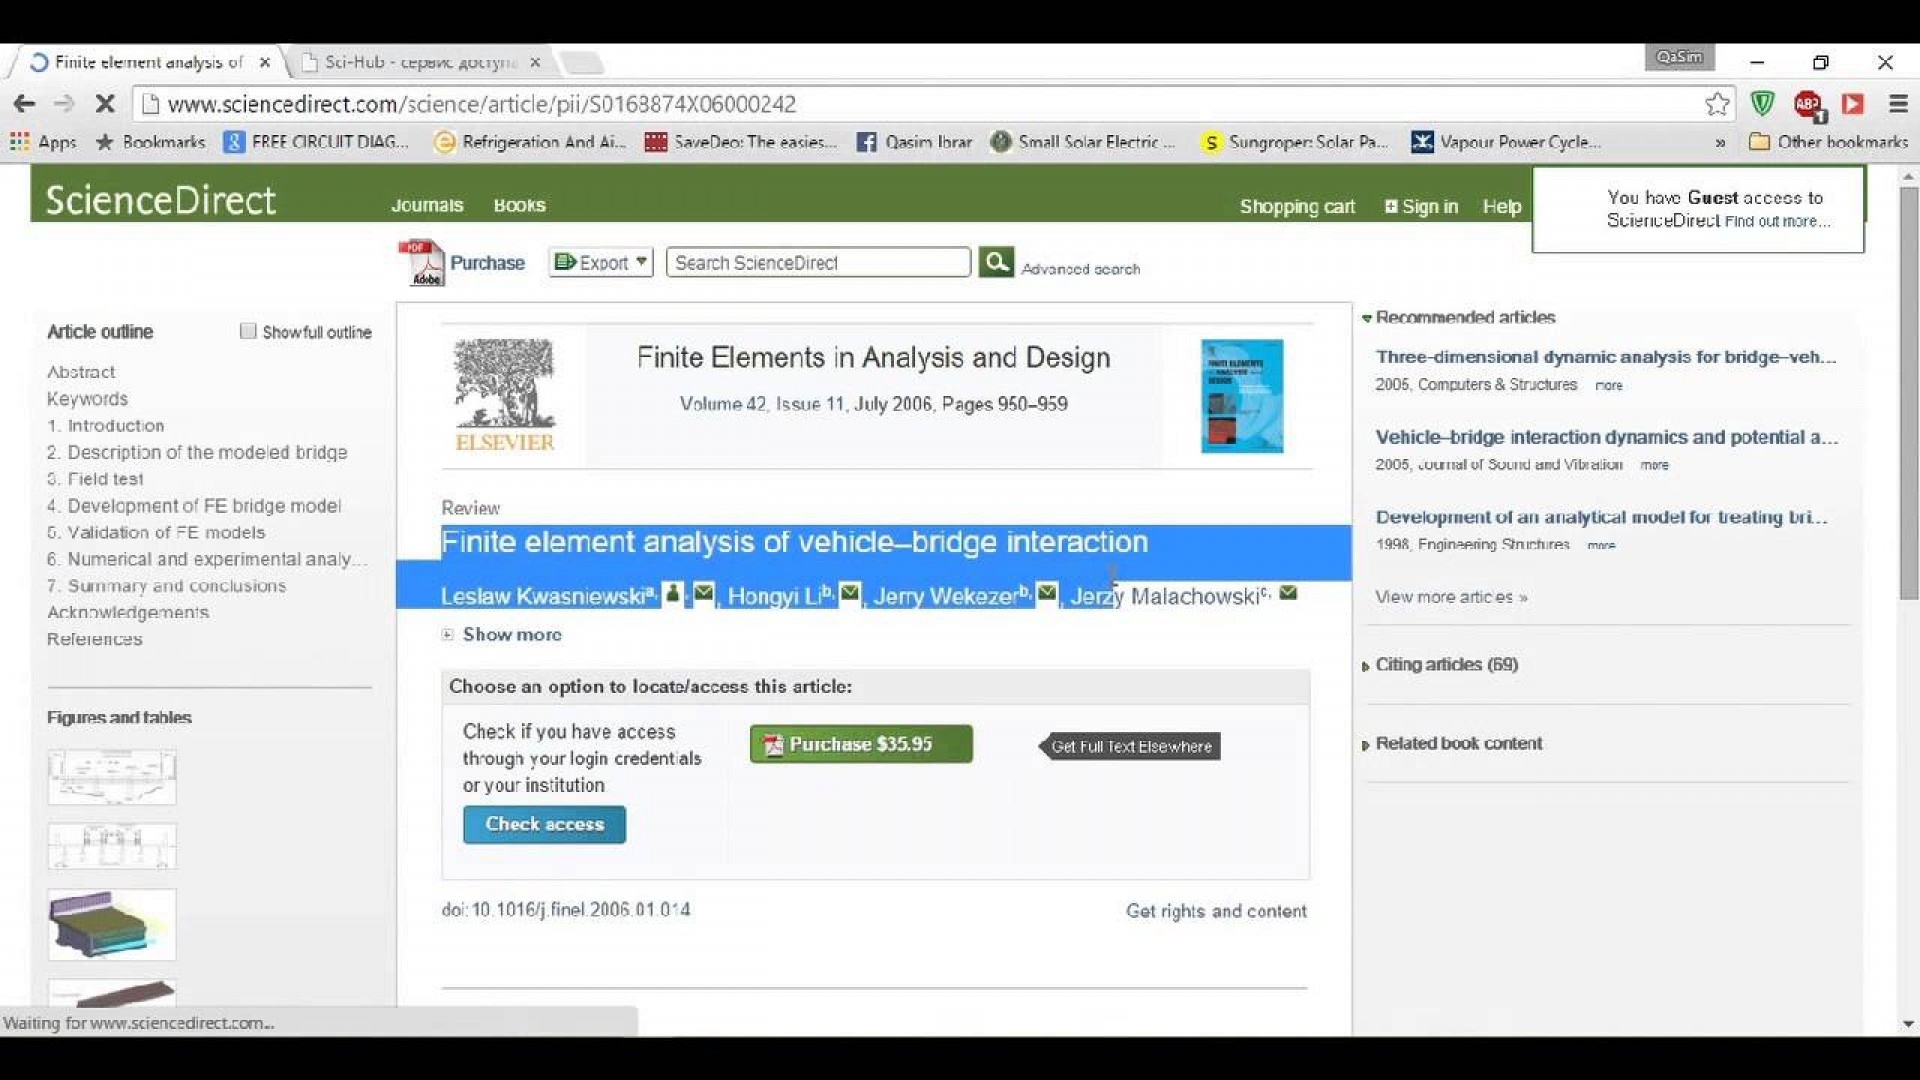 001 Maxresdefault Best Site To Download Researchs Free Unbelievable Research Papers How From Researchgate Springer Sciencedirect 1920